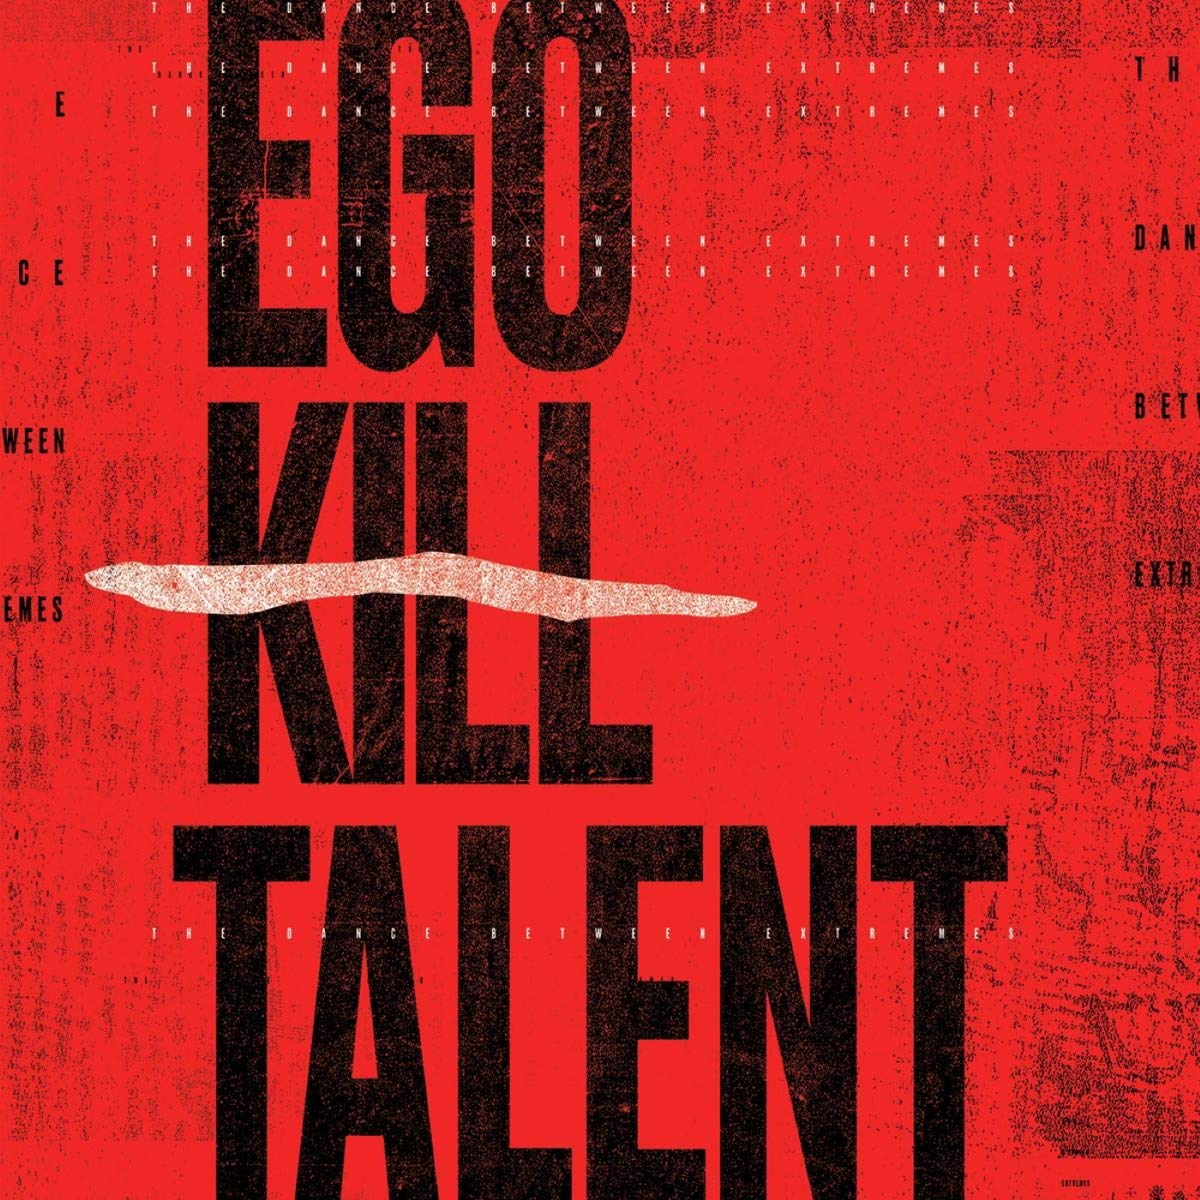 Ego Kill Talent - The Dance Between Extremes [Import]